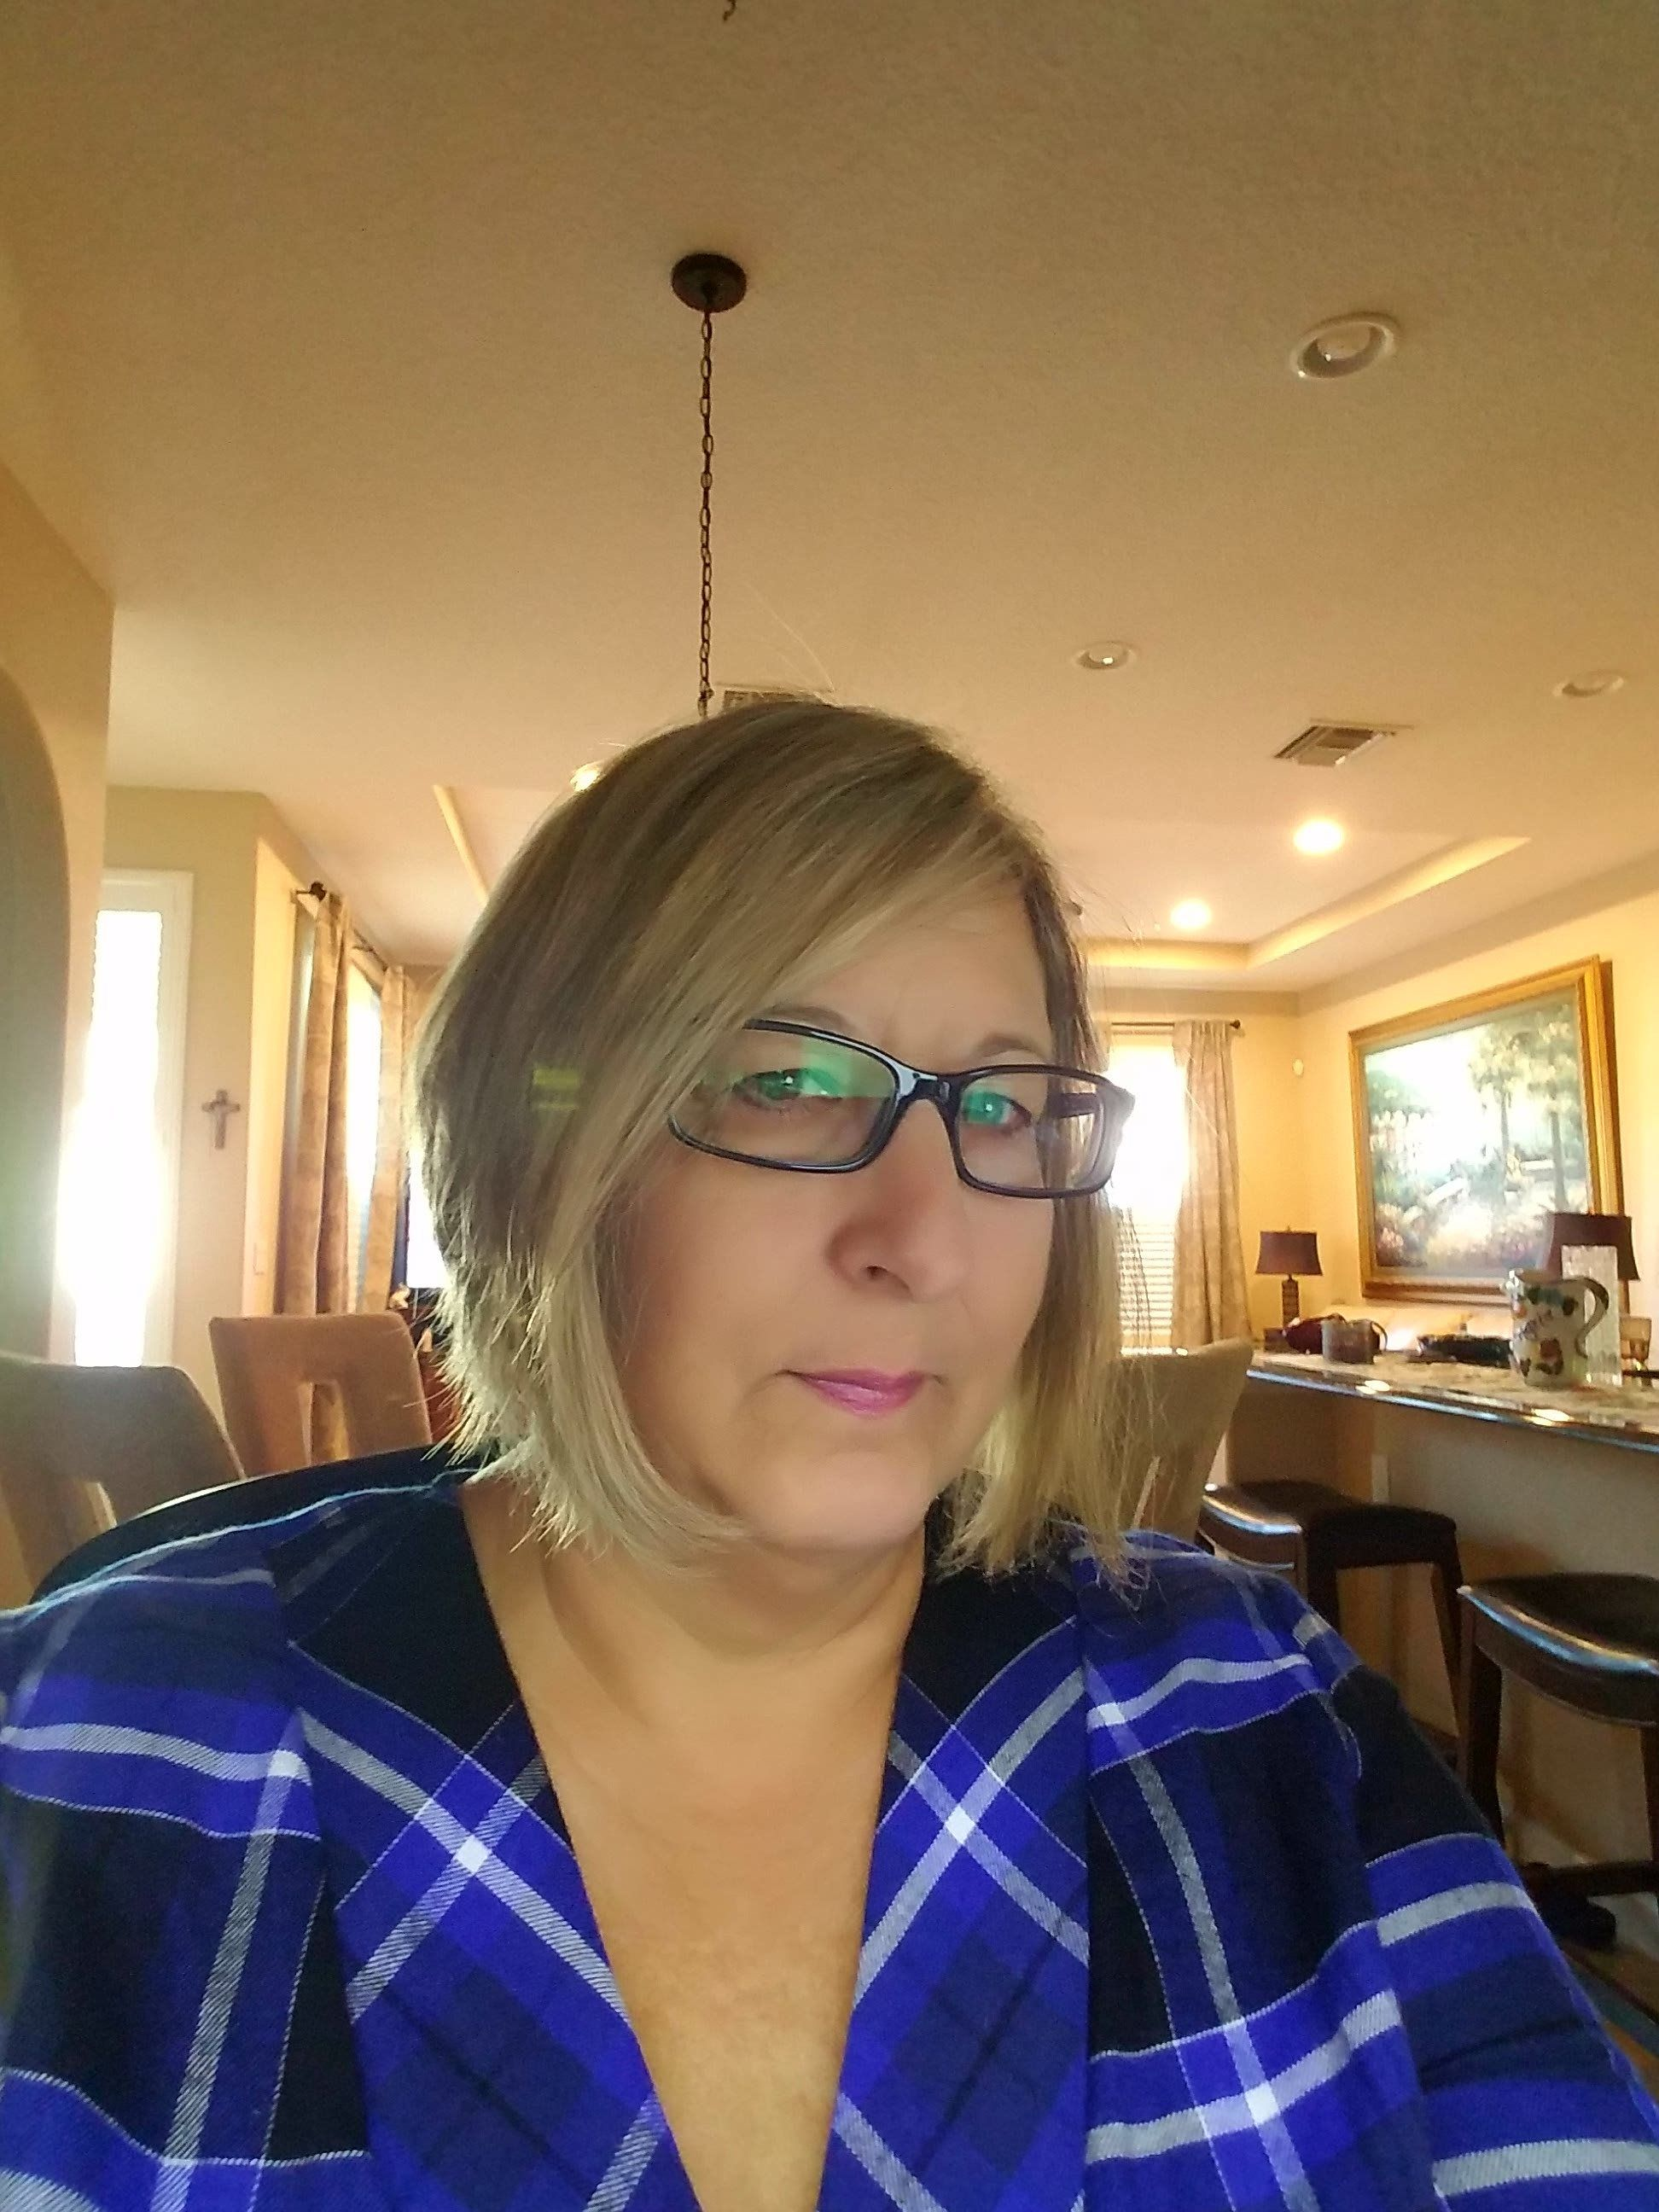 meet deland singles Single women in deland, fl finding quality single women in deland, fl can be a struggle sometimes with eharmony, we make it easy to find the woman you've been searching for all your life with our proven online dating matching system.